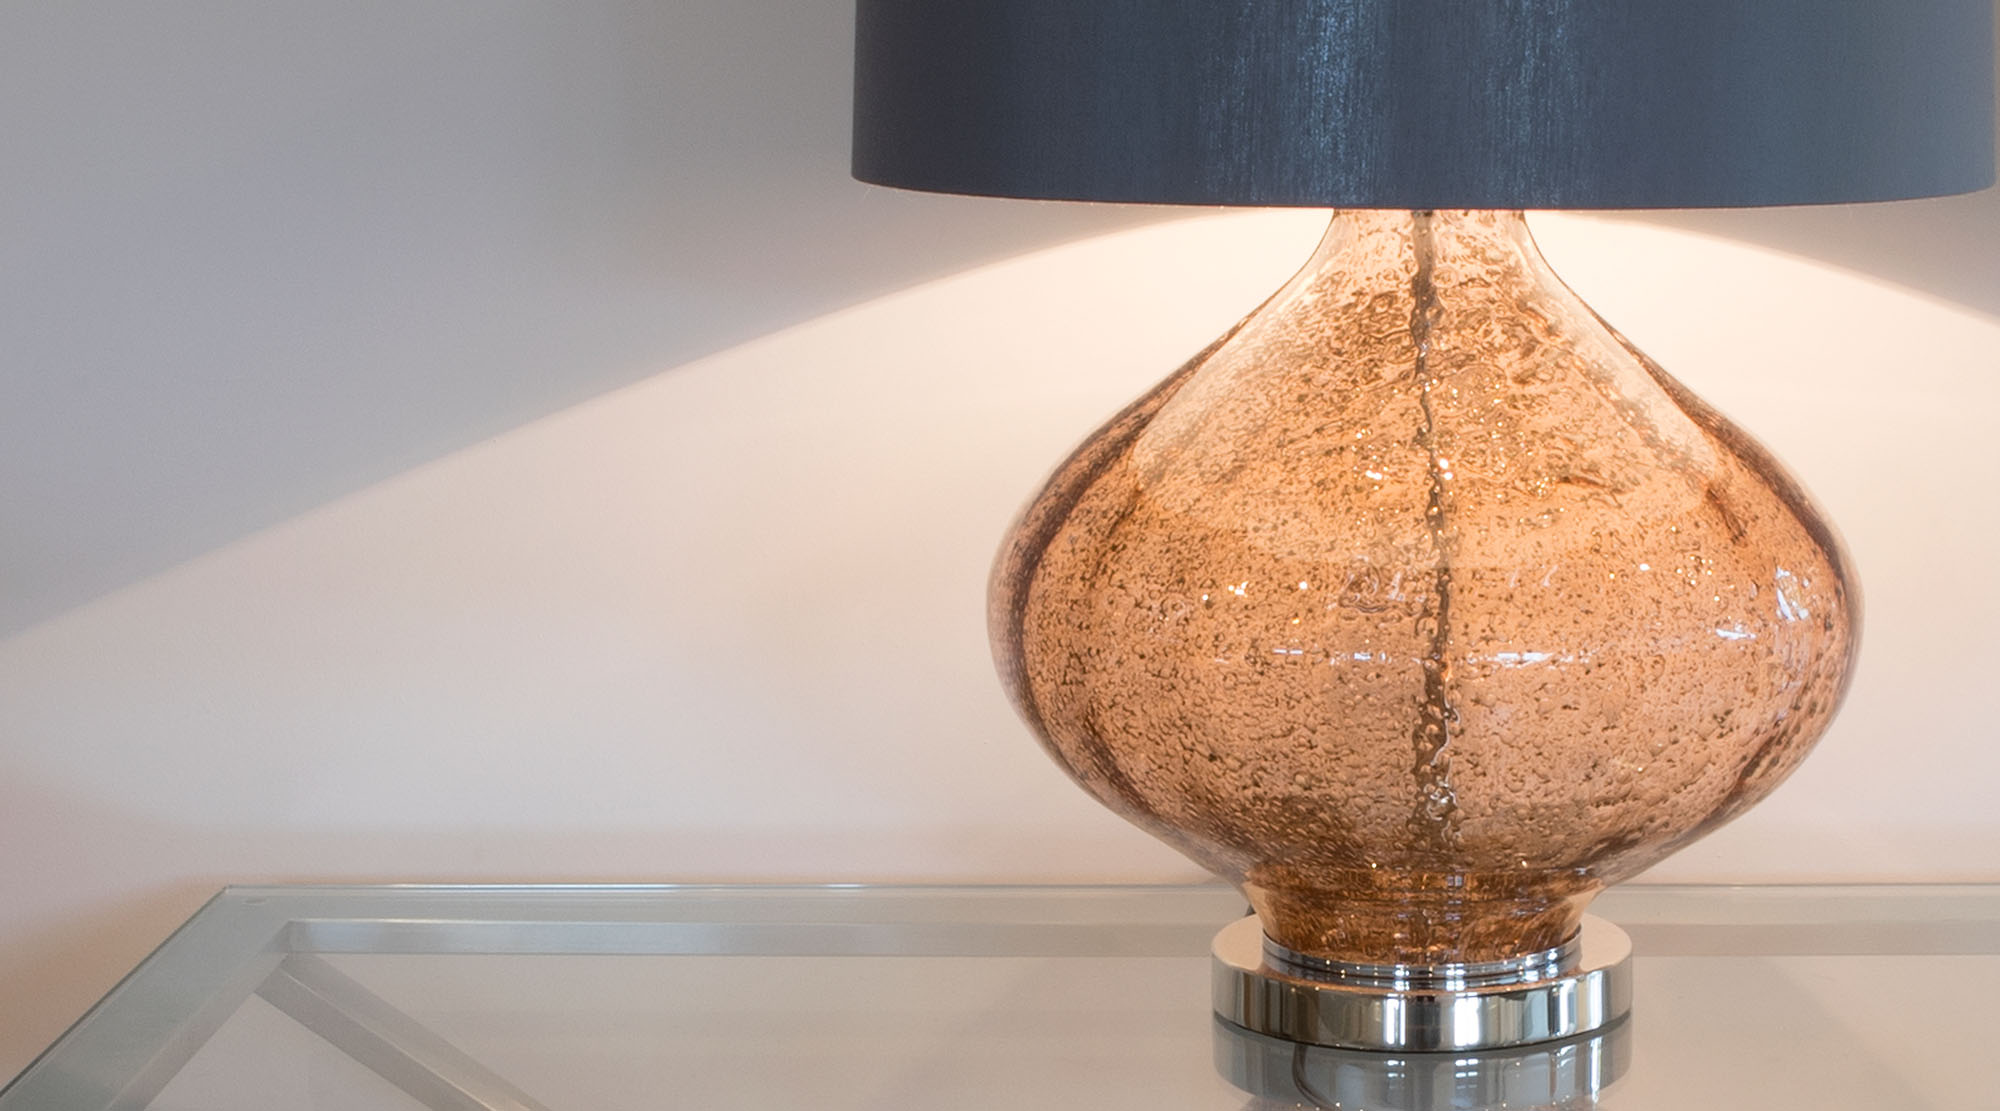 Table lamp fitting with shade.